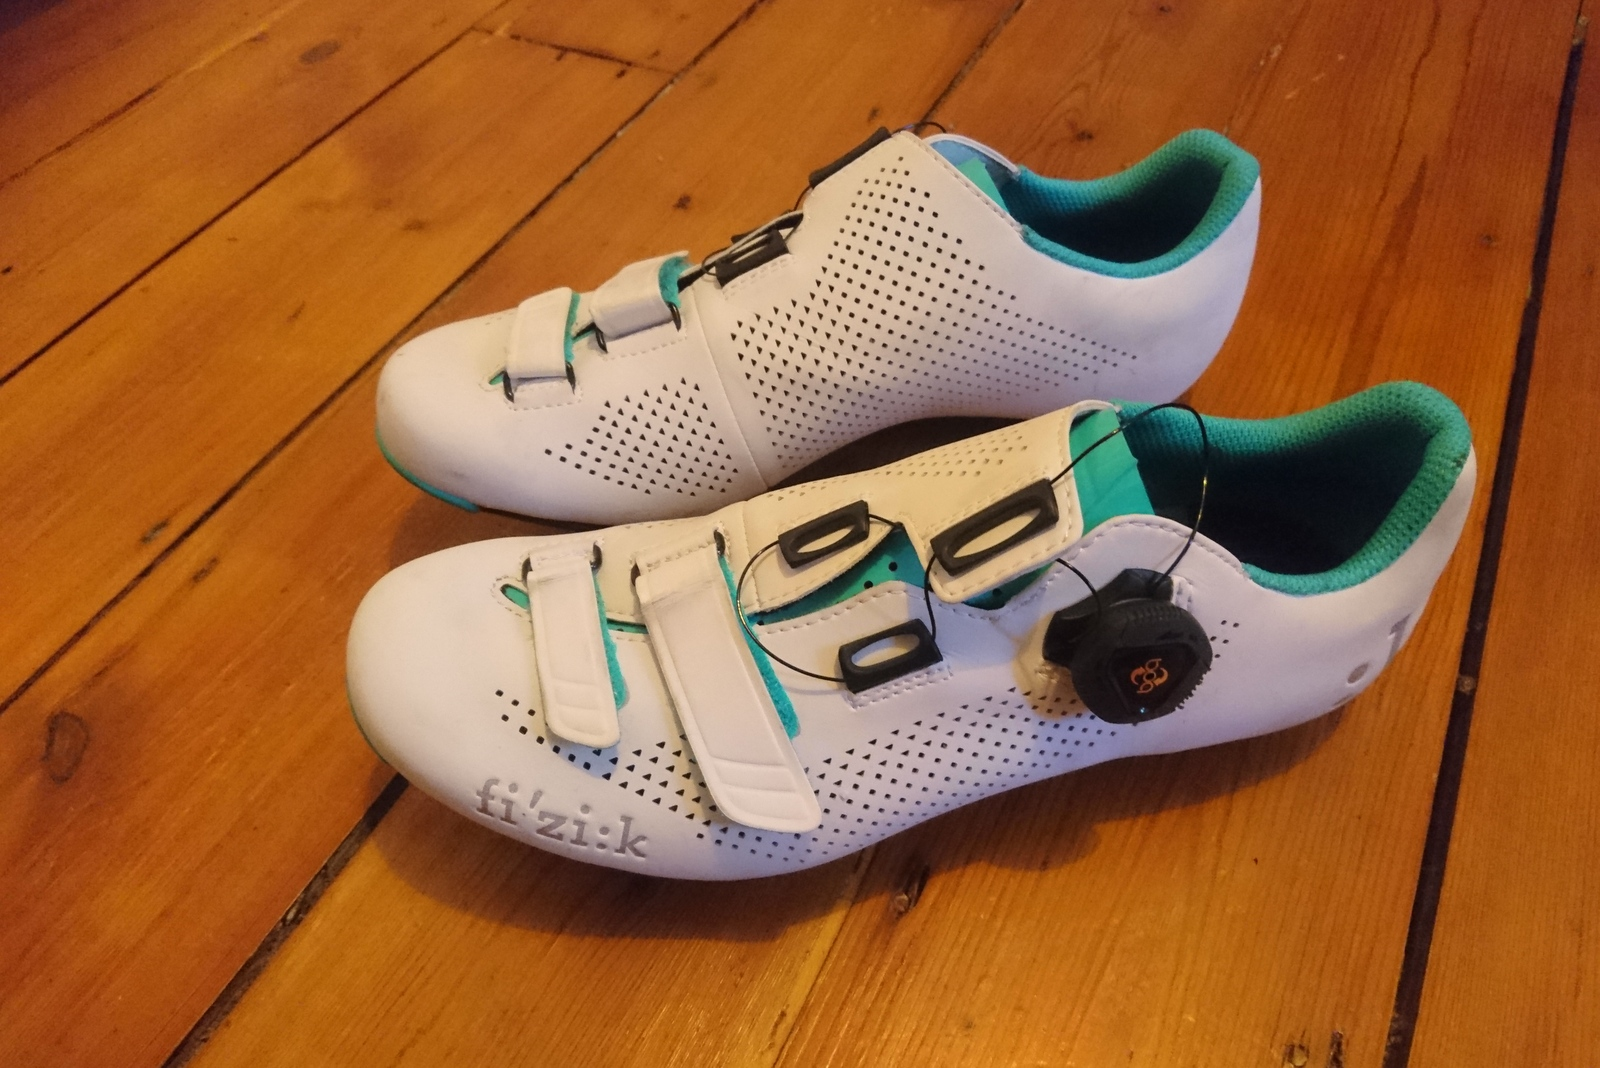 finest selection f837f 60d33 Fizik R4B Donna road cycling shoes review - Cycling Weekly